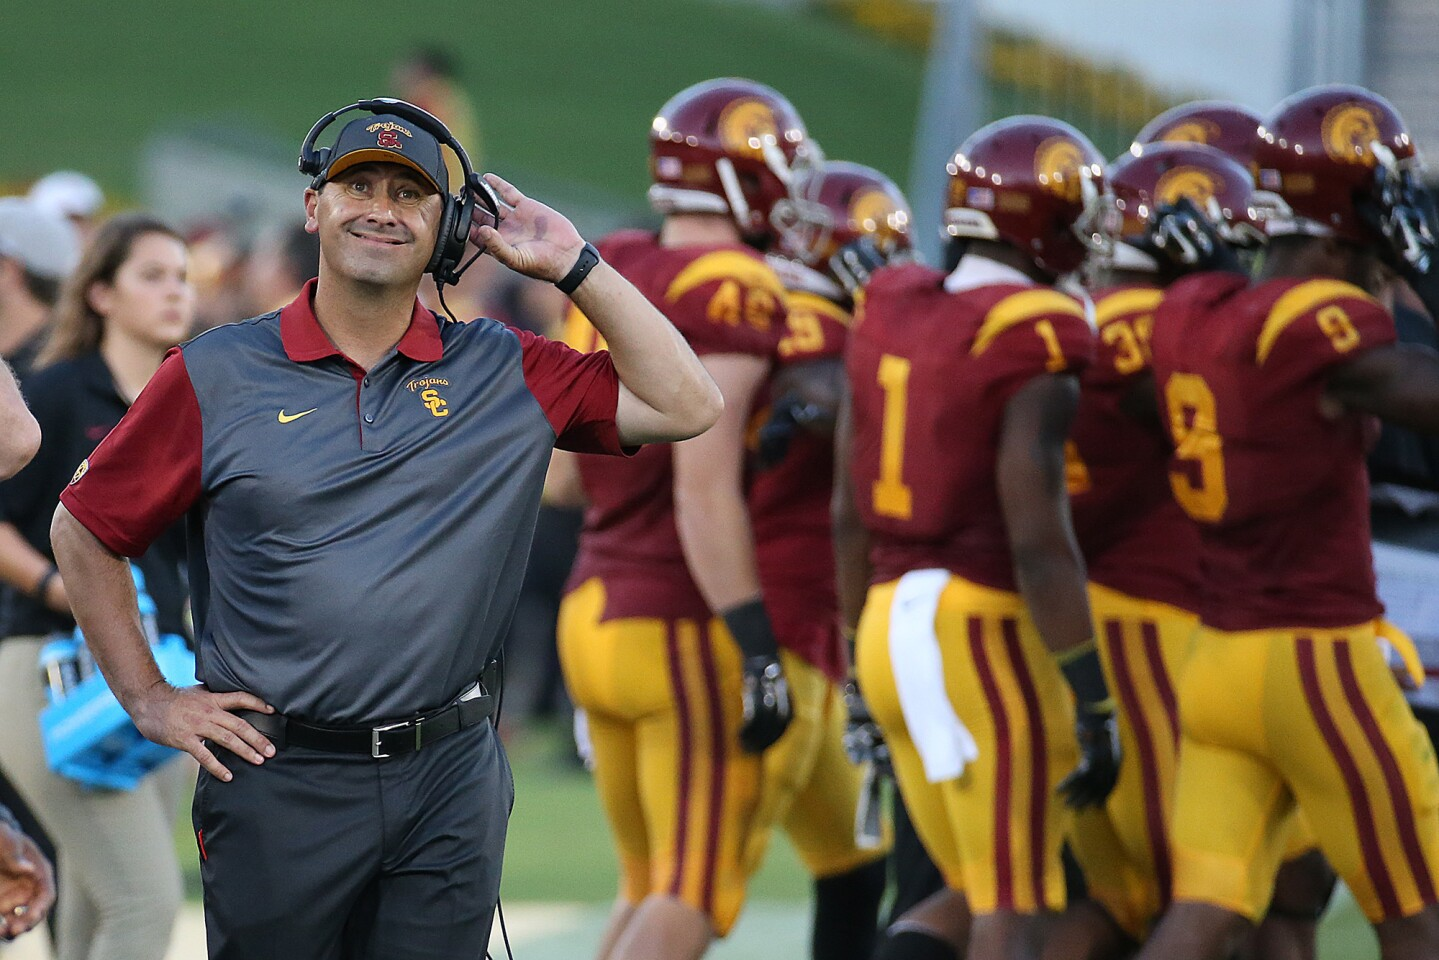 USC Coach Steve Sarkisian looks at the scoreboard after Stanford scored a touchdown on Sept. 19, 2015.